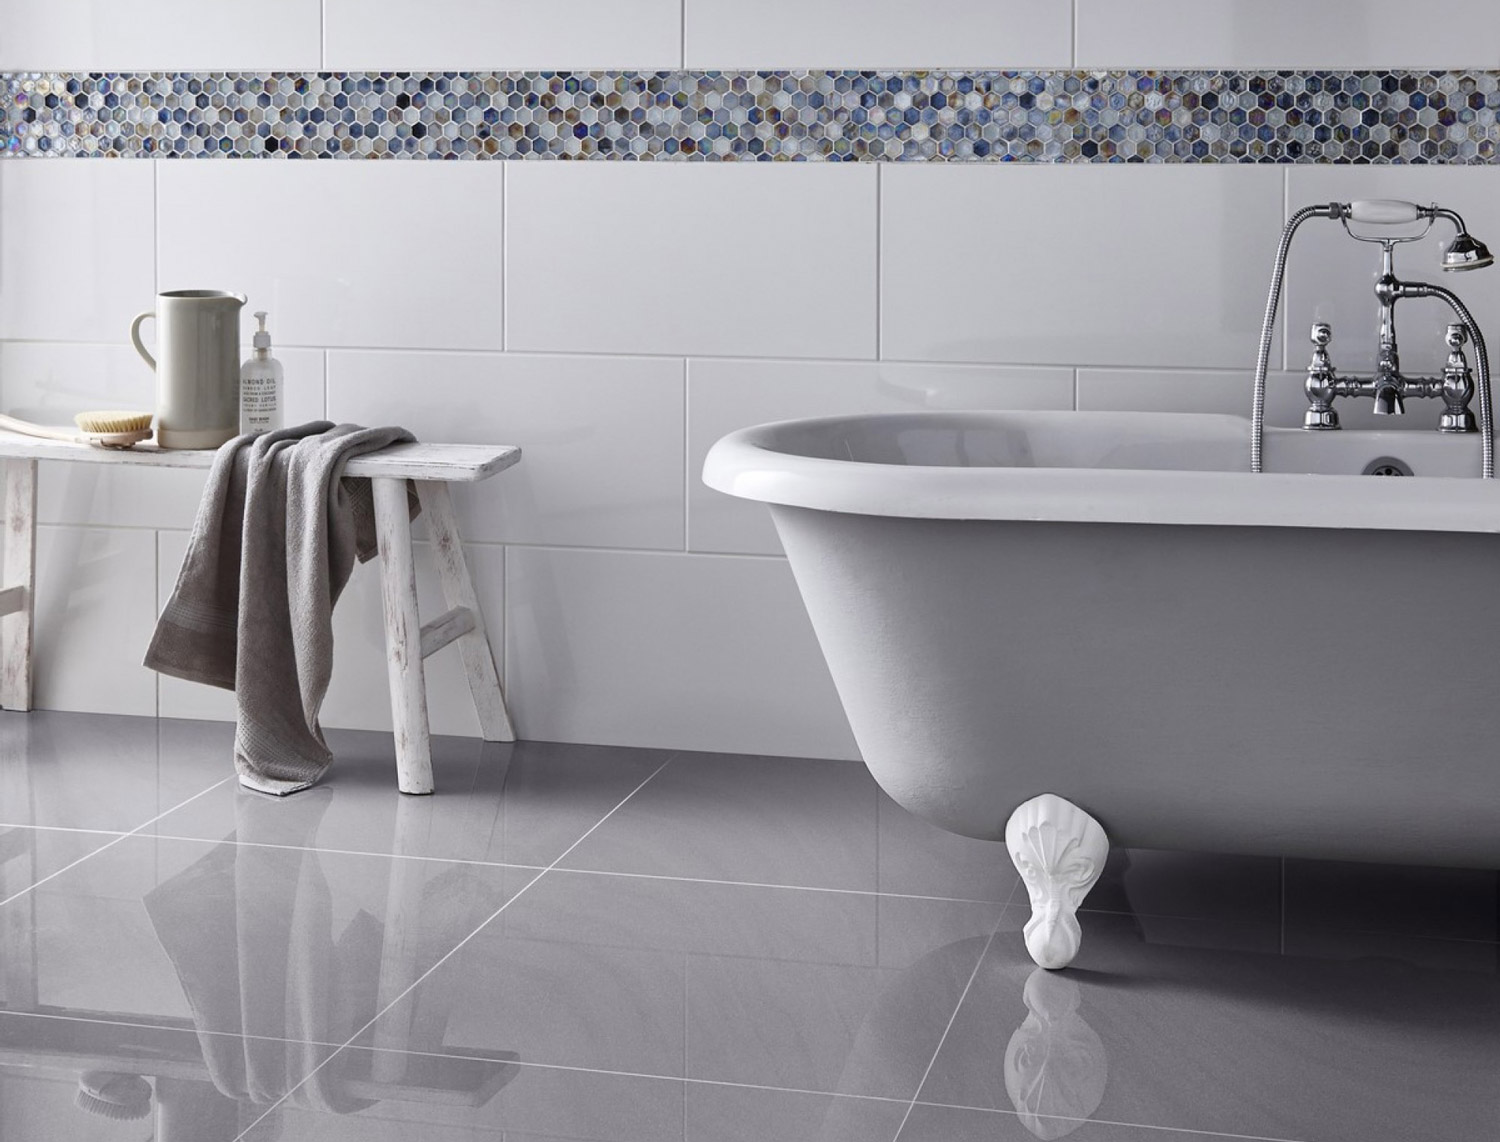 Dimensions tiles and bathrooms ceramic tiles and bathrooms frome photo gallery aloadofball Gallery